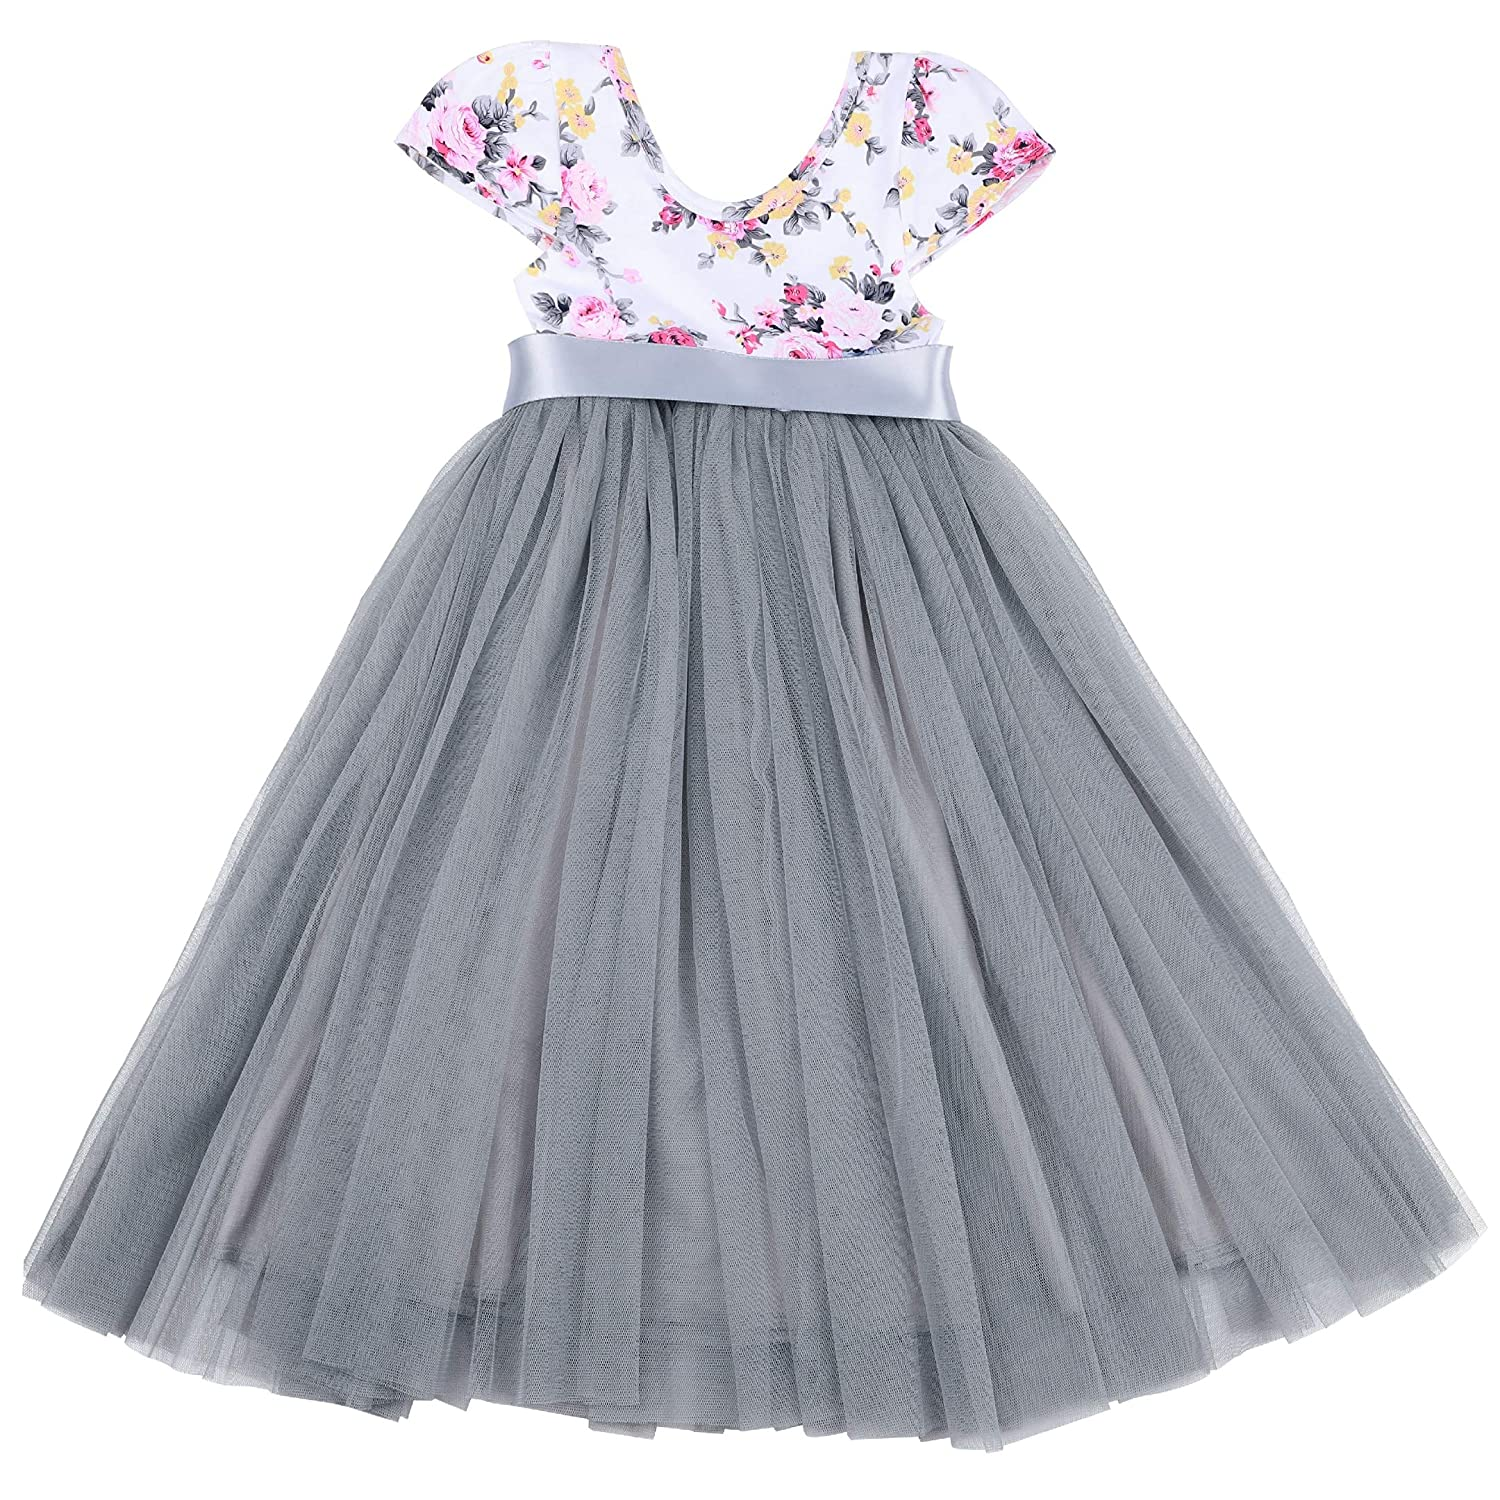 f3851157b147 Amazon.com: Flofallzique Easter Girls Dress Baby Tutu Tulle Floral Vintage  Princess Dress for 1-12 Years Old: Clothing